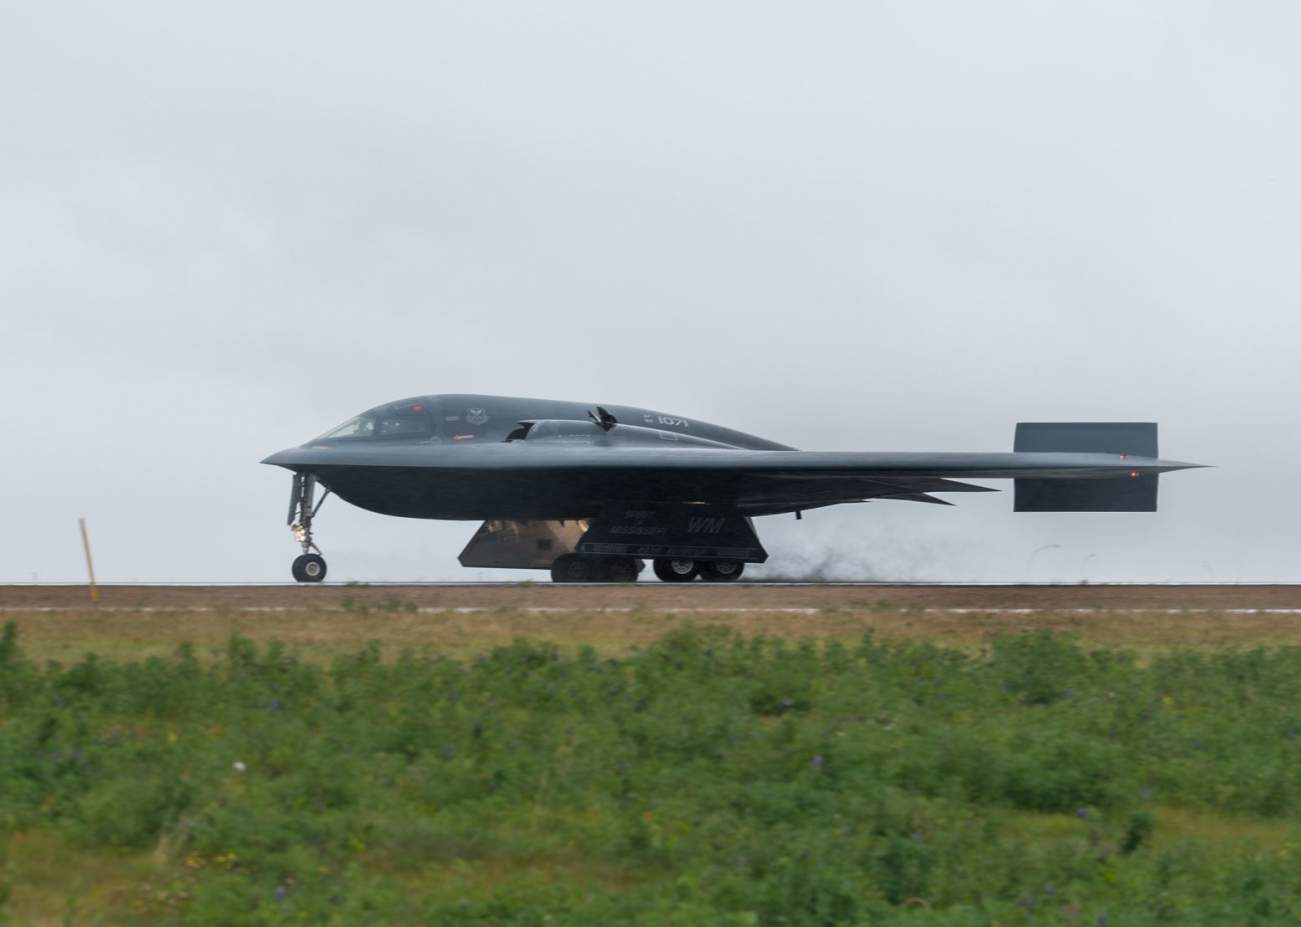 Stealth Bomber Denied: Why Russia May Never Get This Super Weapon